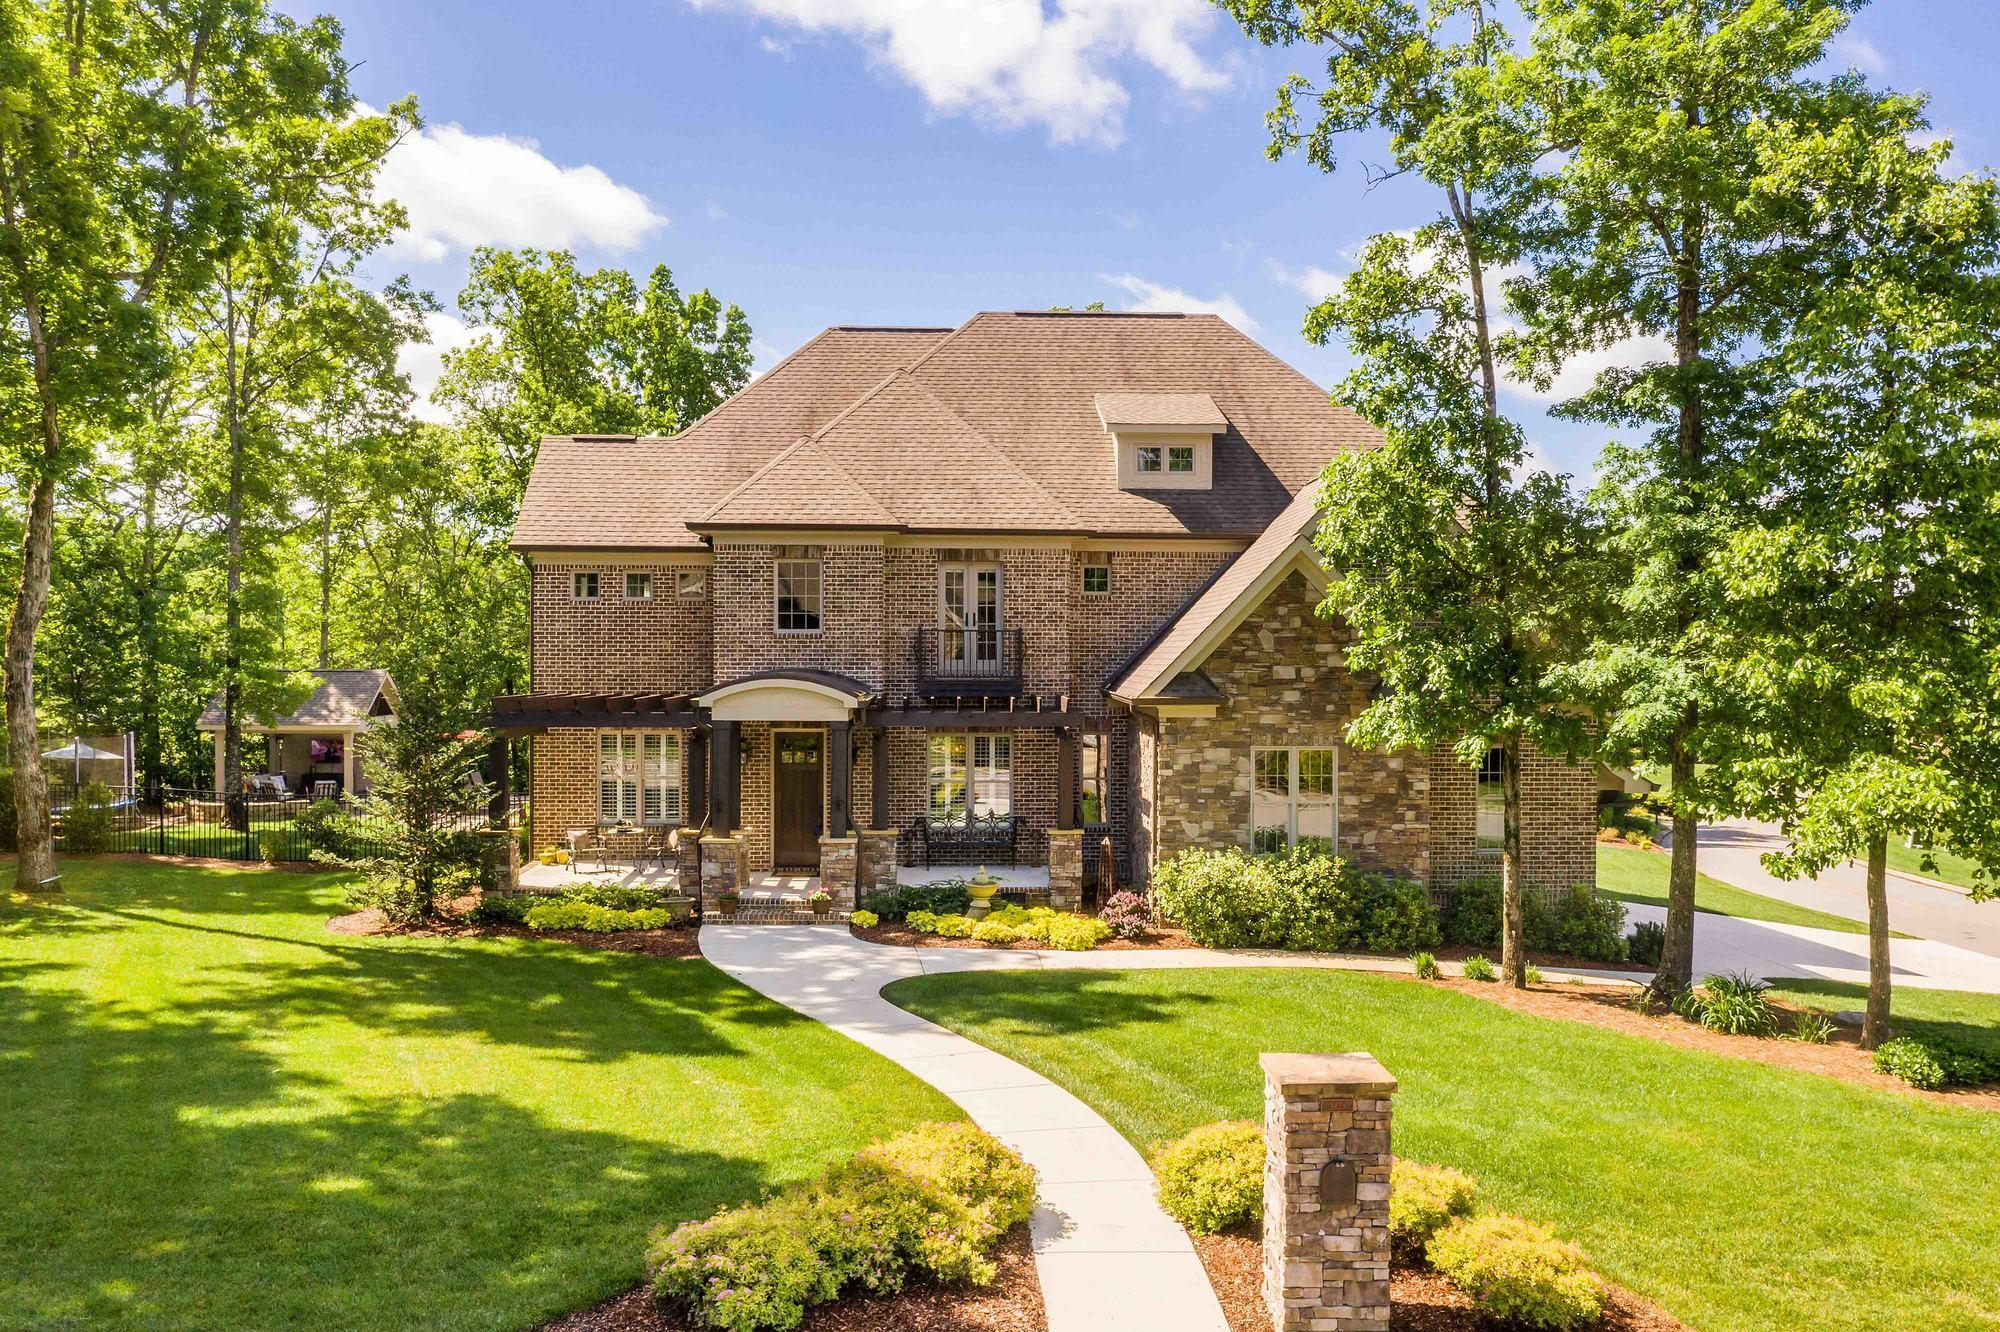 3428 Cloudcrest Tr, Signal Mountain, TN 37377